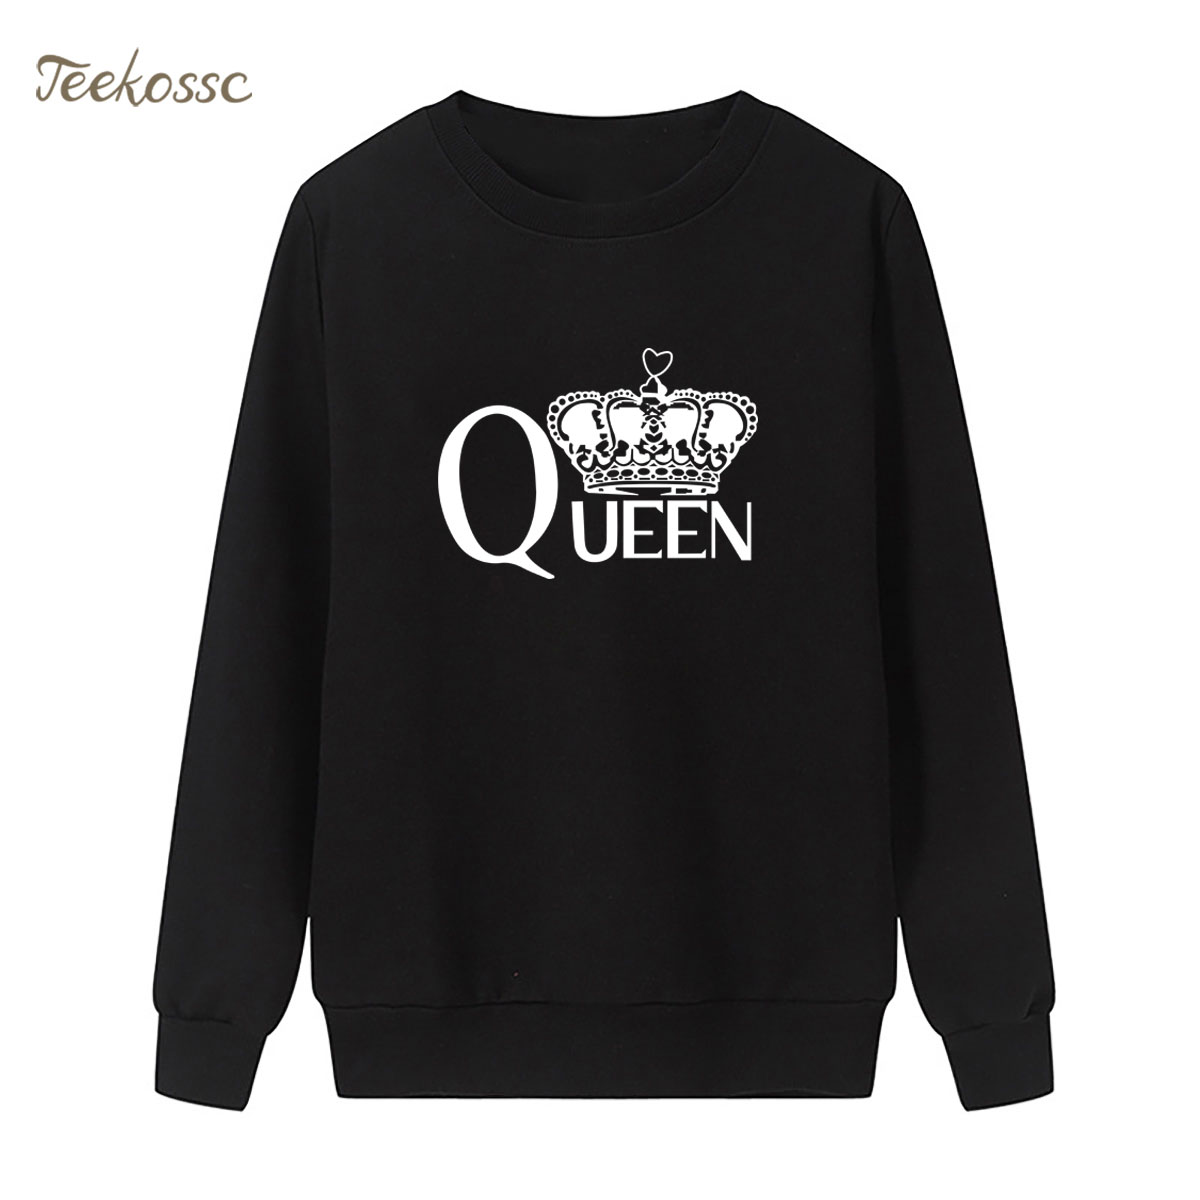 Queen Crown Sweatshirt Casual Print Hoodie 2018 New Fashion Winter Autumn Women Lasdies Pullover Loose Fleece Black Streetwear